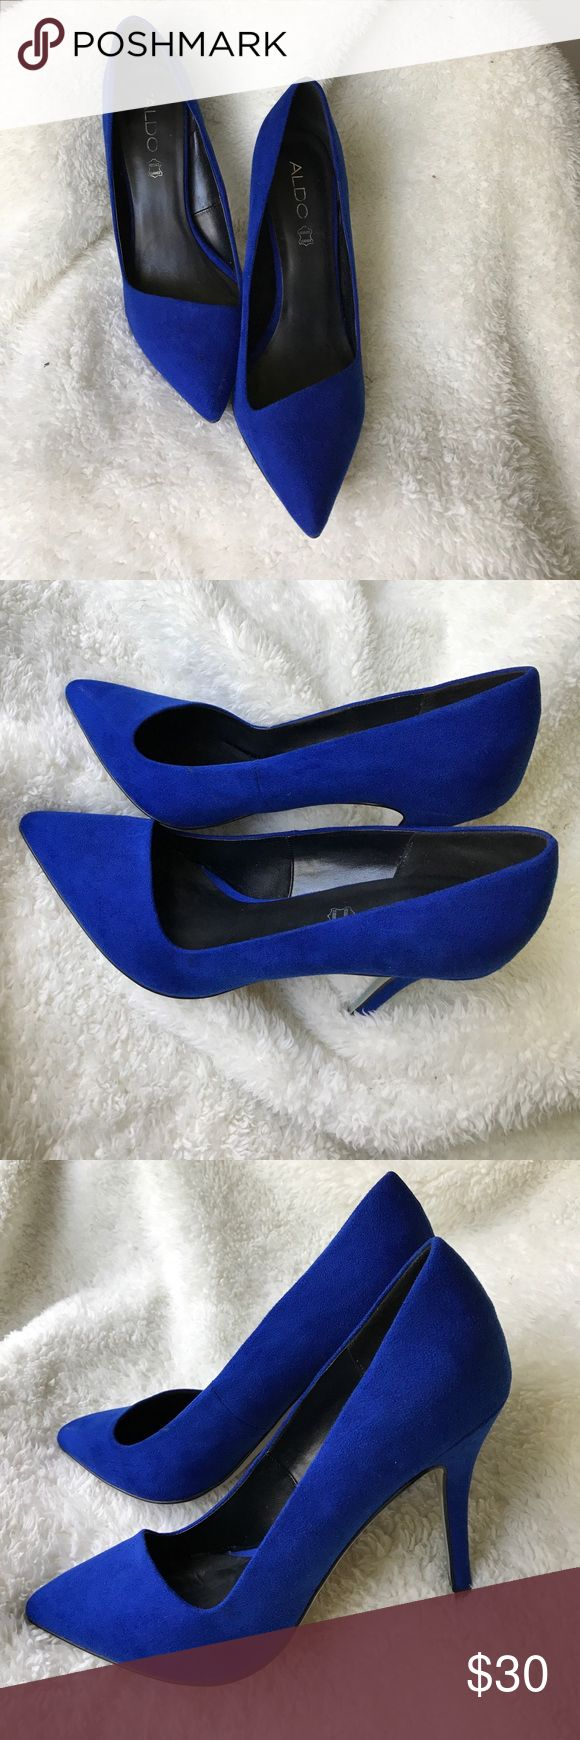 Cobalt blue suede pumps Beautiful cobalt blue suede pumps by ALDO would look great with literally everything! Try them with jeans, dress, rompers, etc. Comfortable and colorful! Aldo Shoes Heels